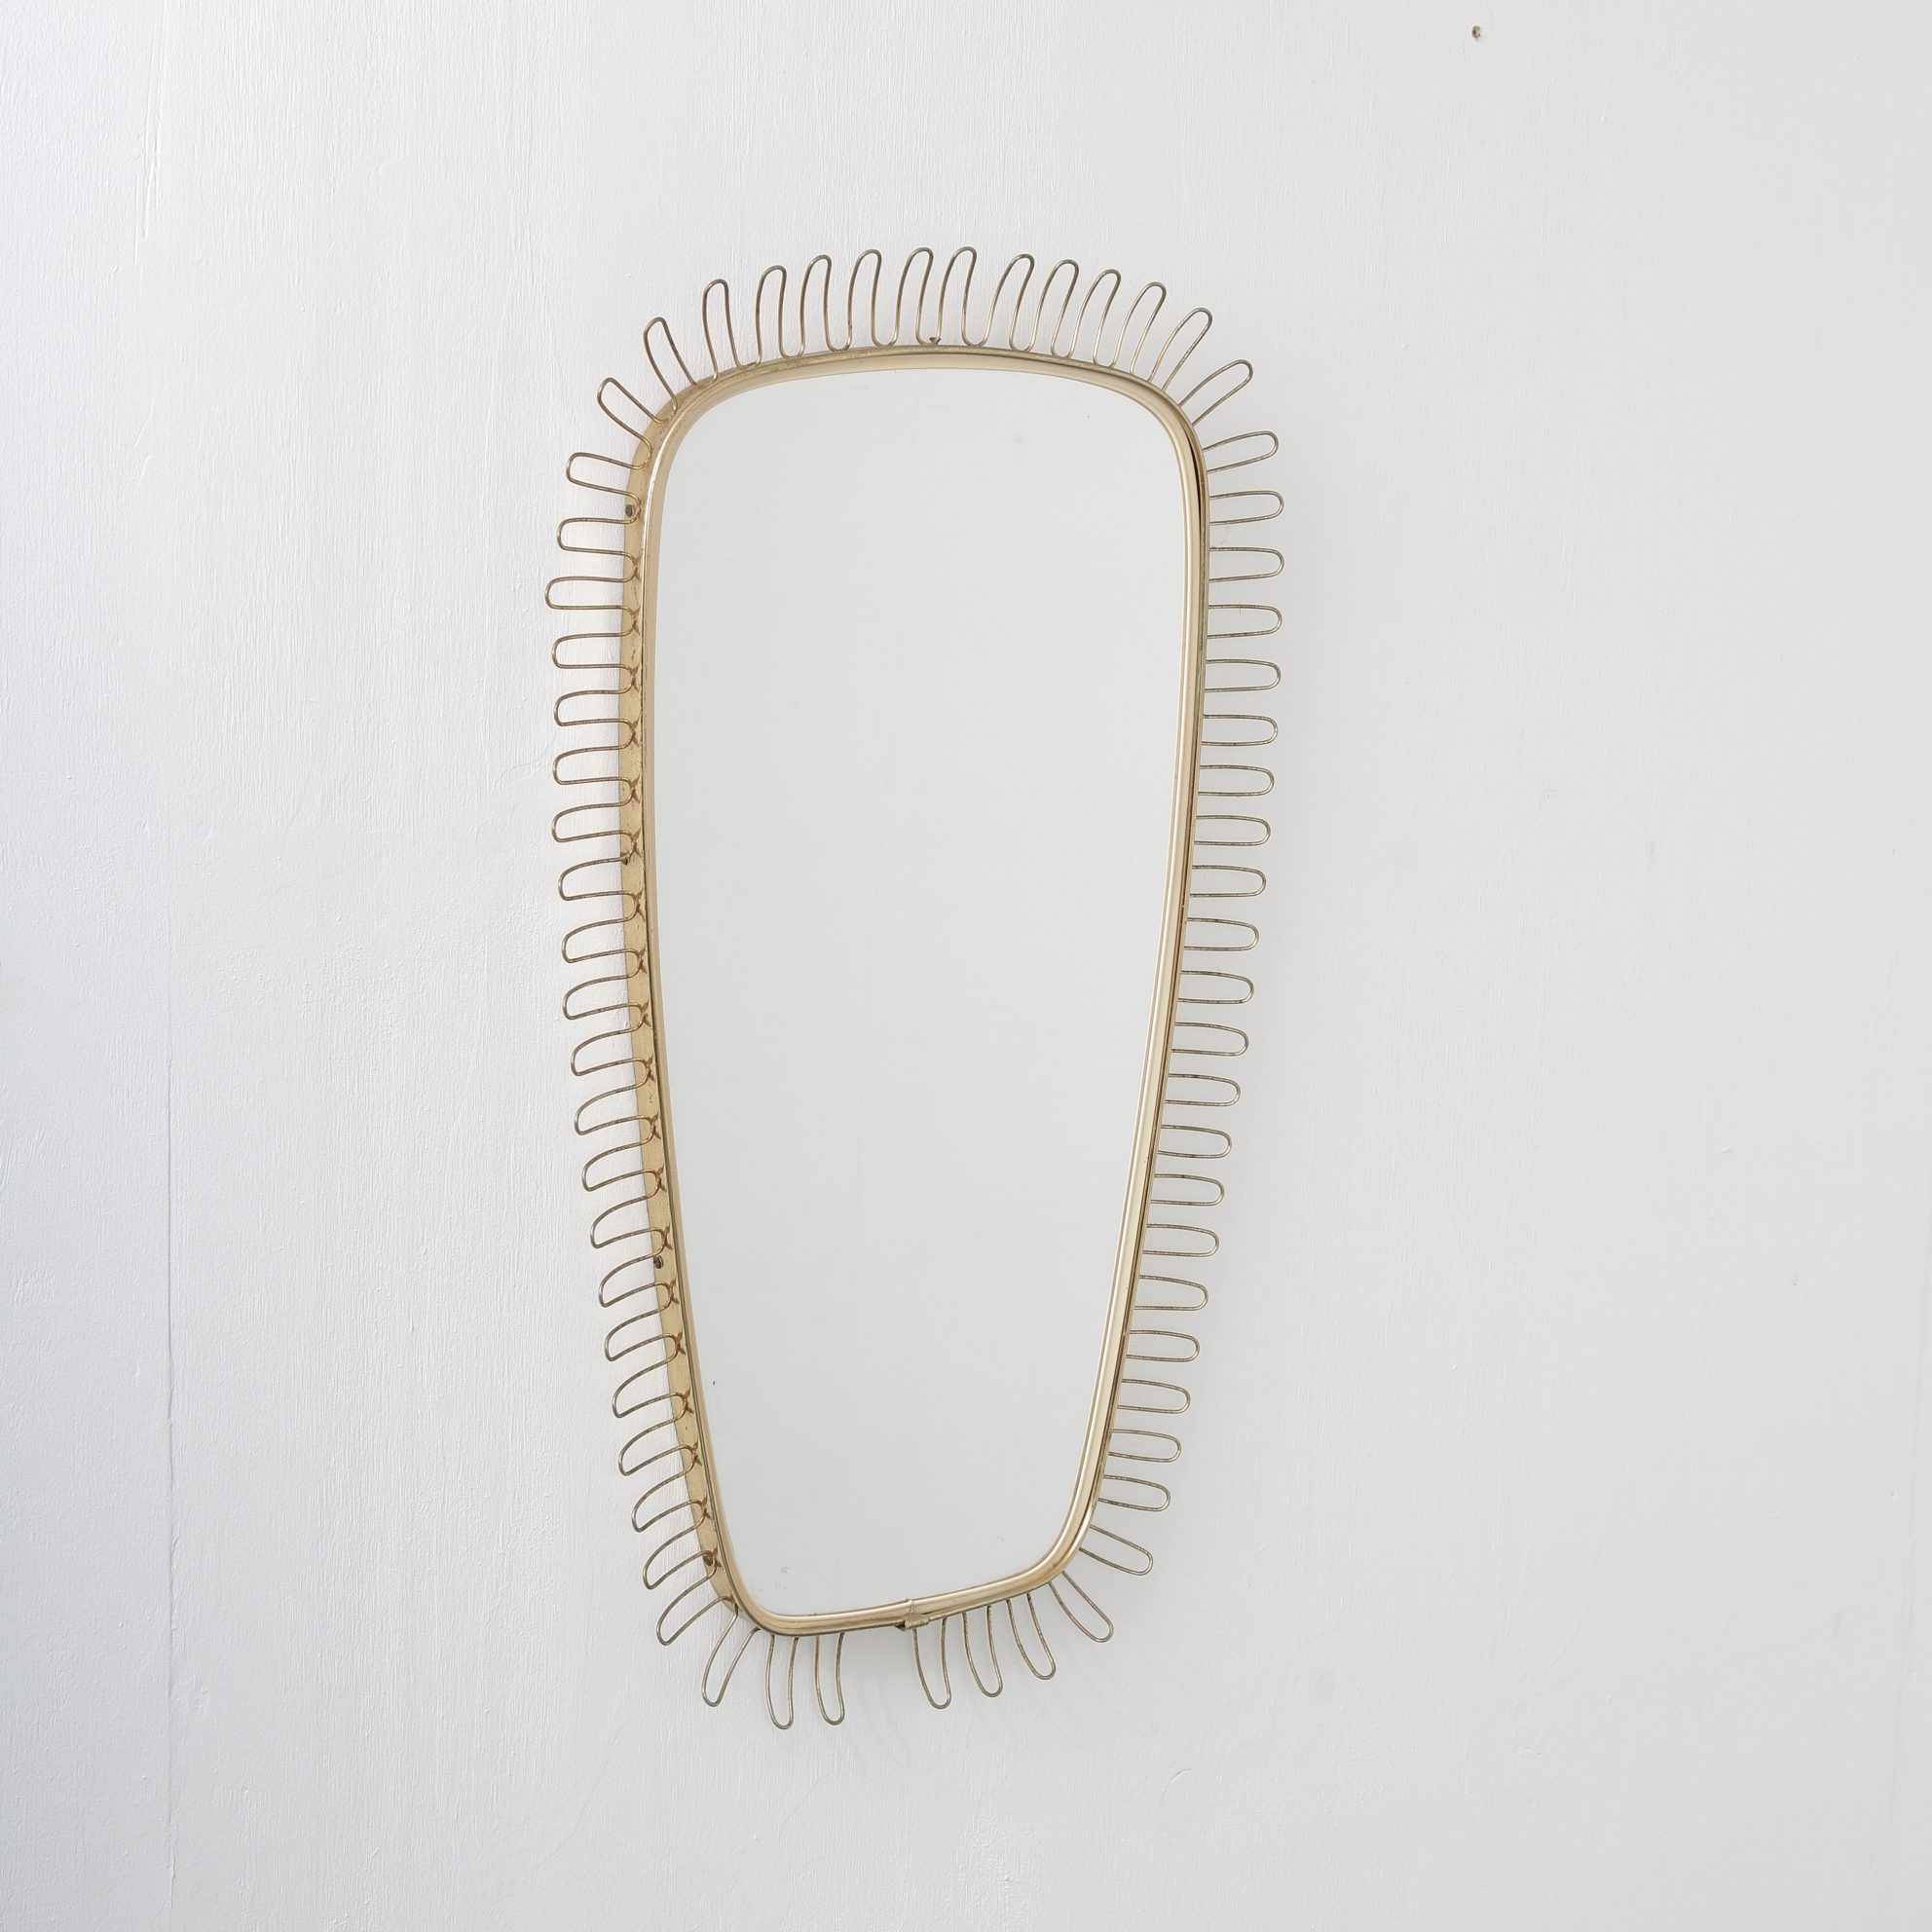 m23747 1950s Mirror attributed to Jozef Frank Sweden